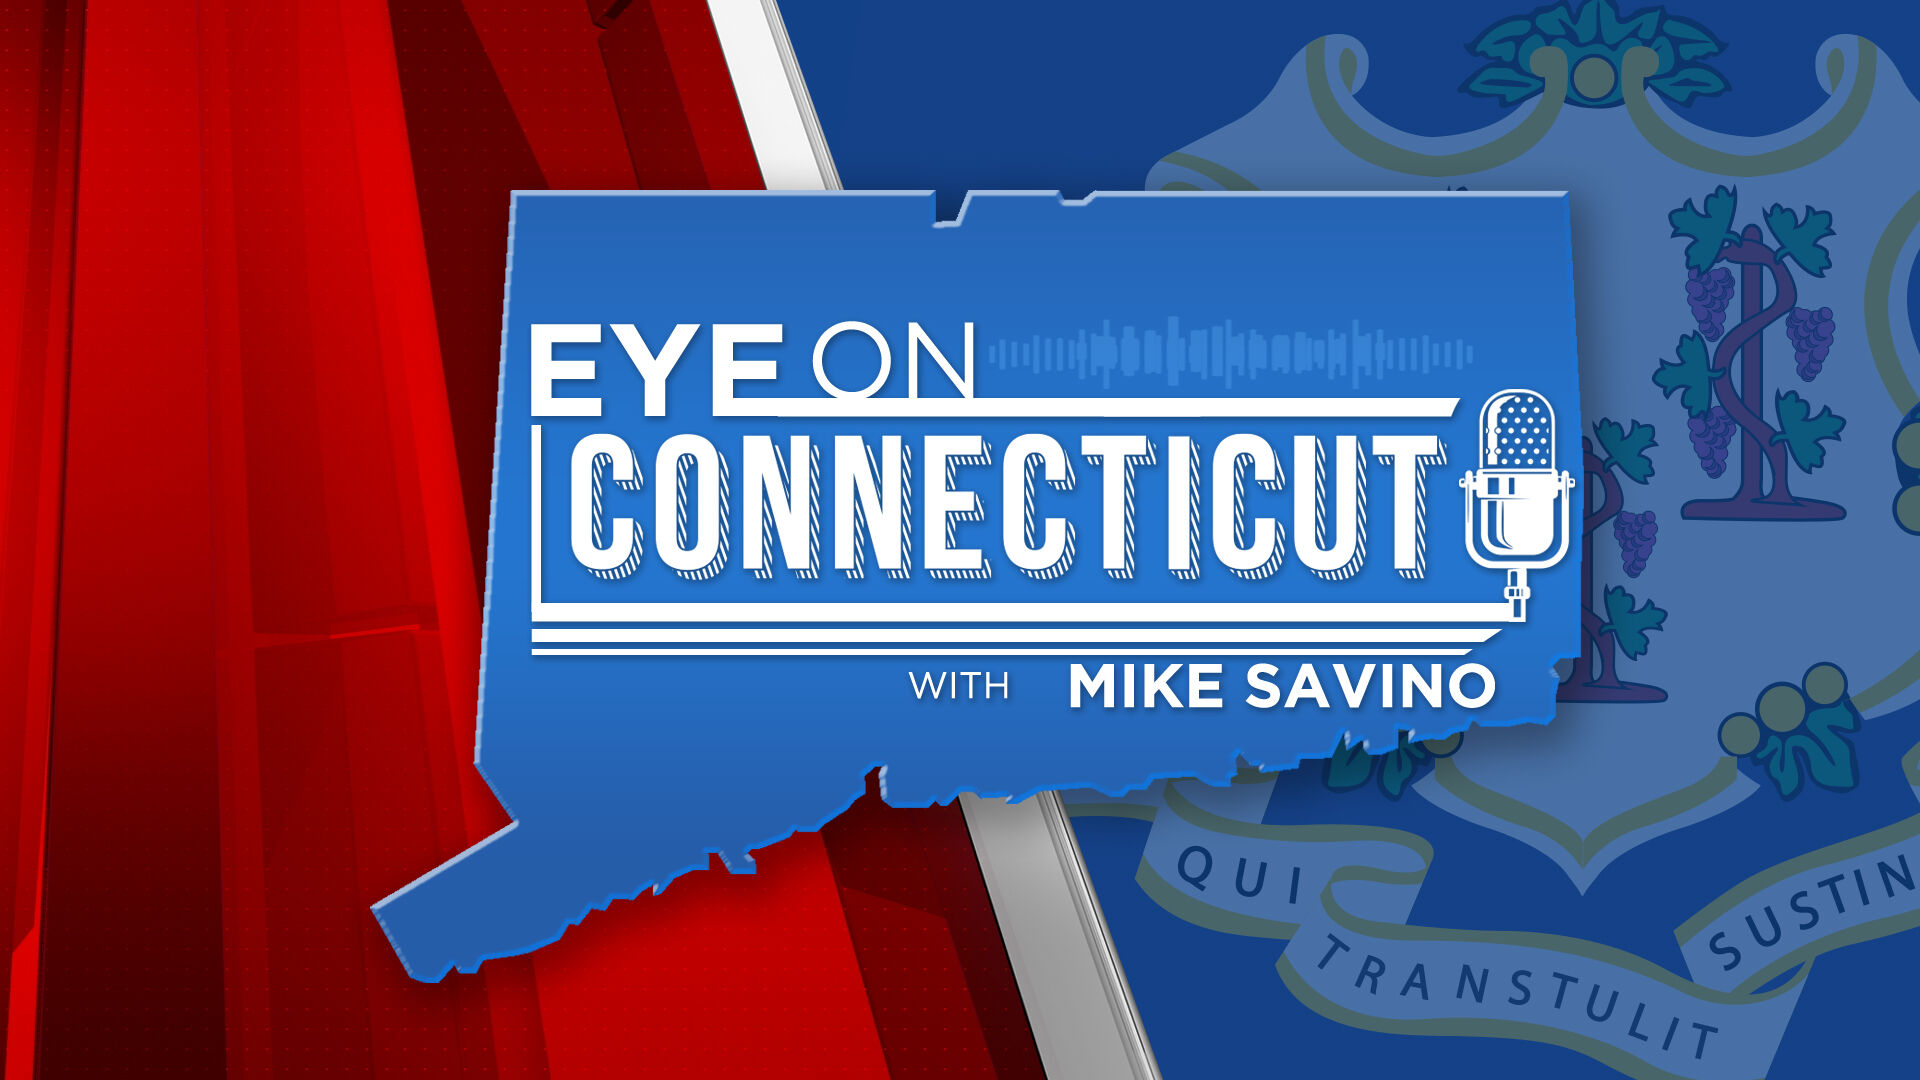 Eye on Connecticut